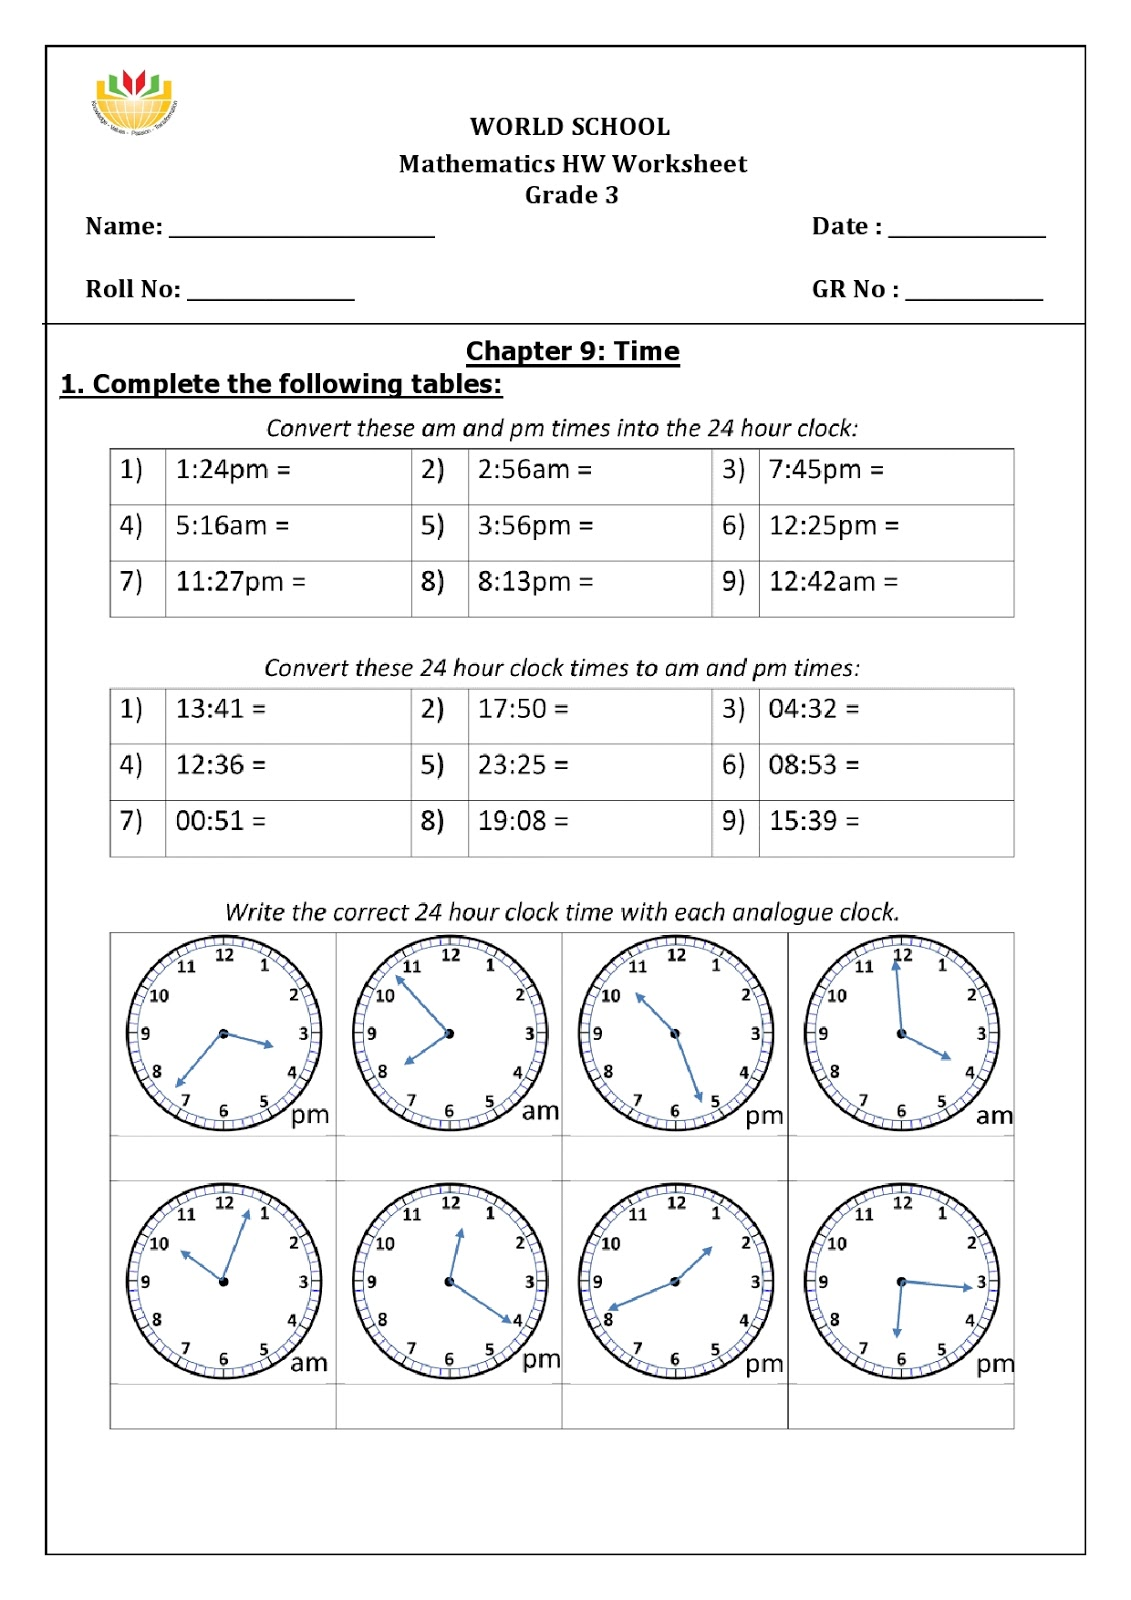 Birla World School Oman Homework For Grade 3 As On 16 01